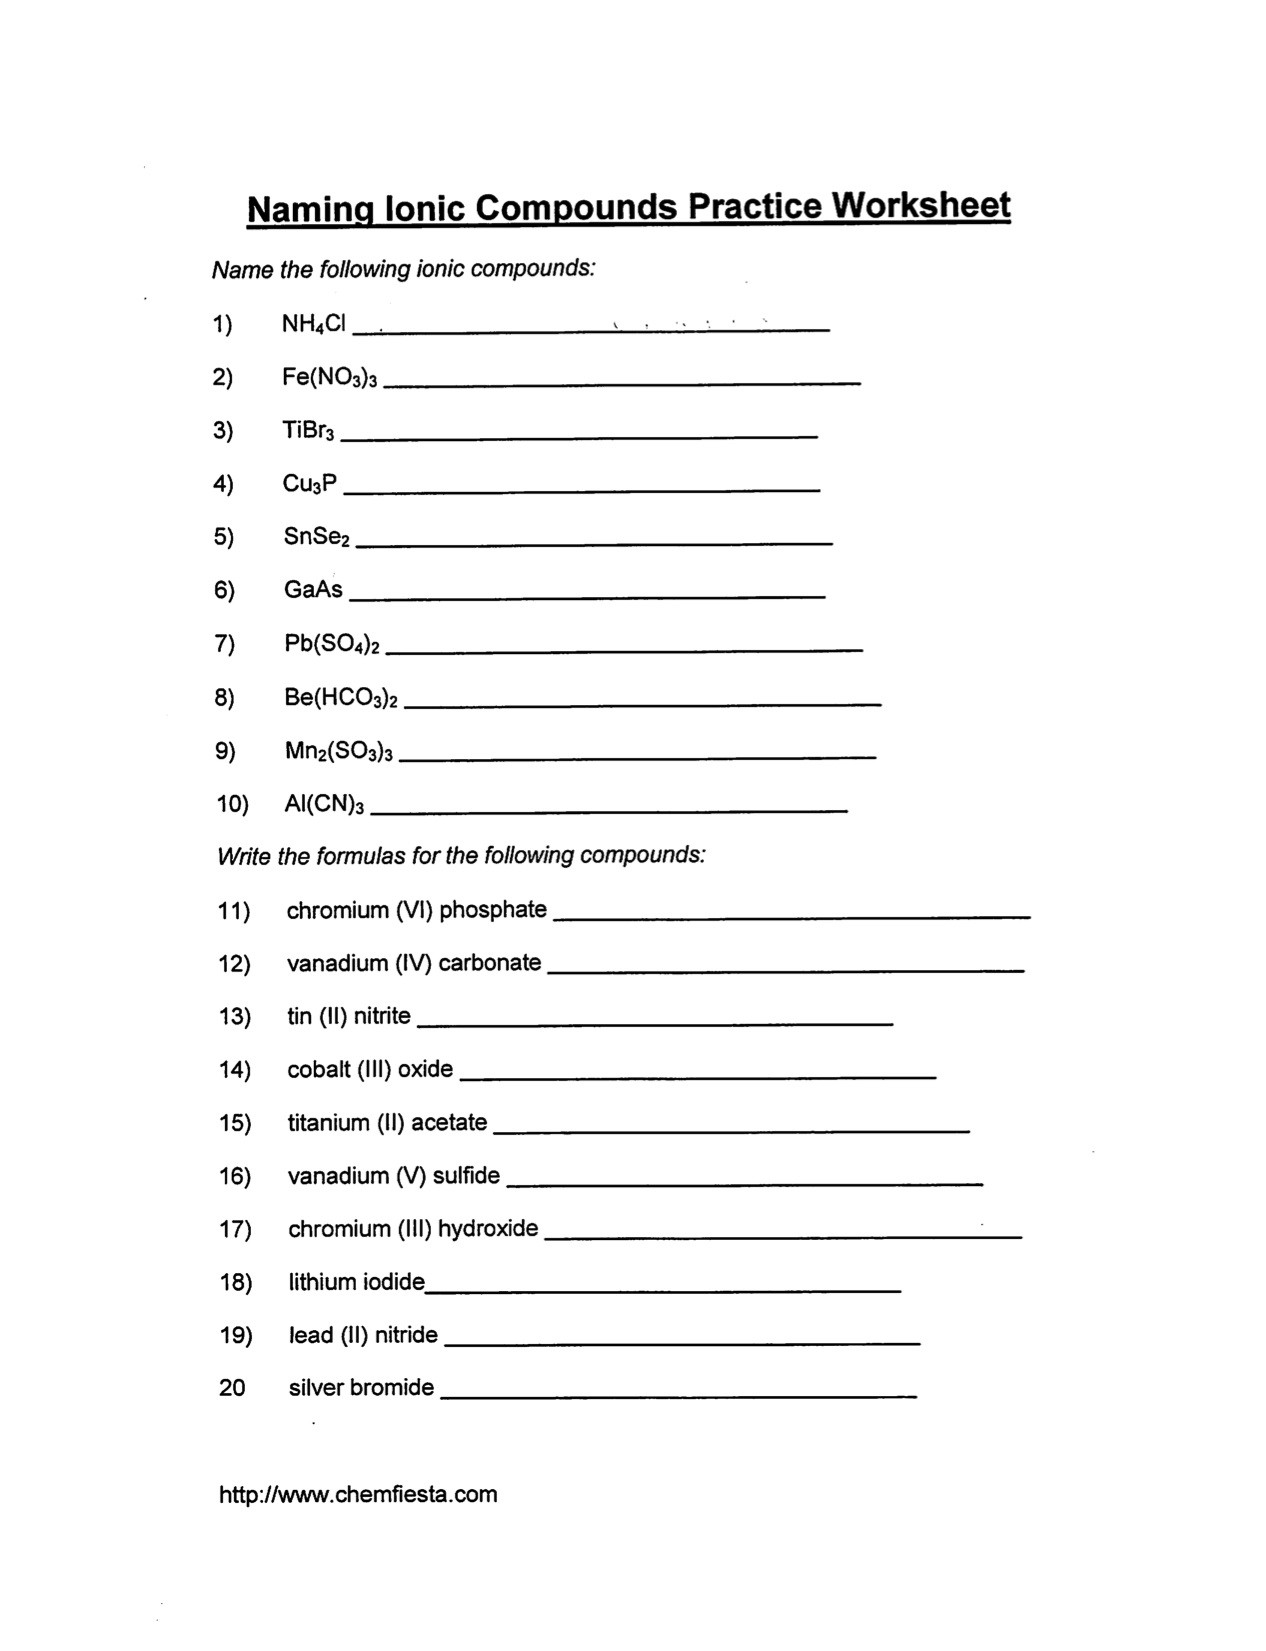 Naming Ionic Compounds Worksheet Answers Nomenclature Practice Worksheet